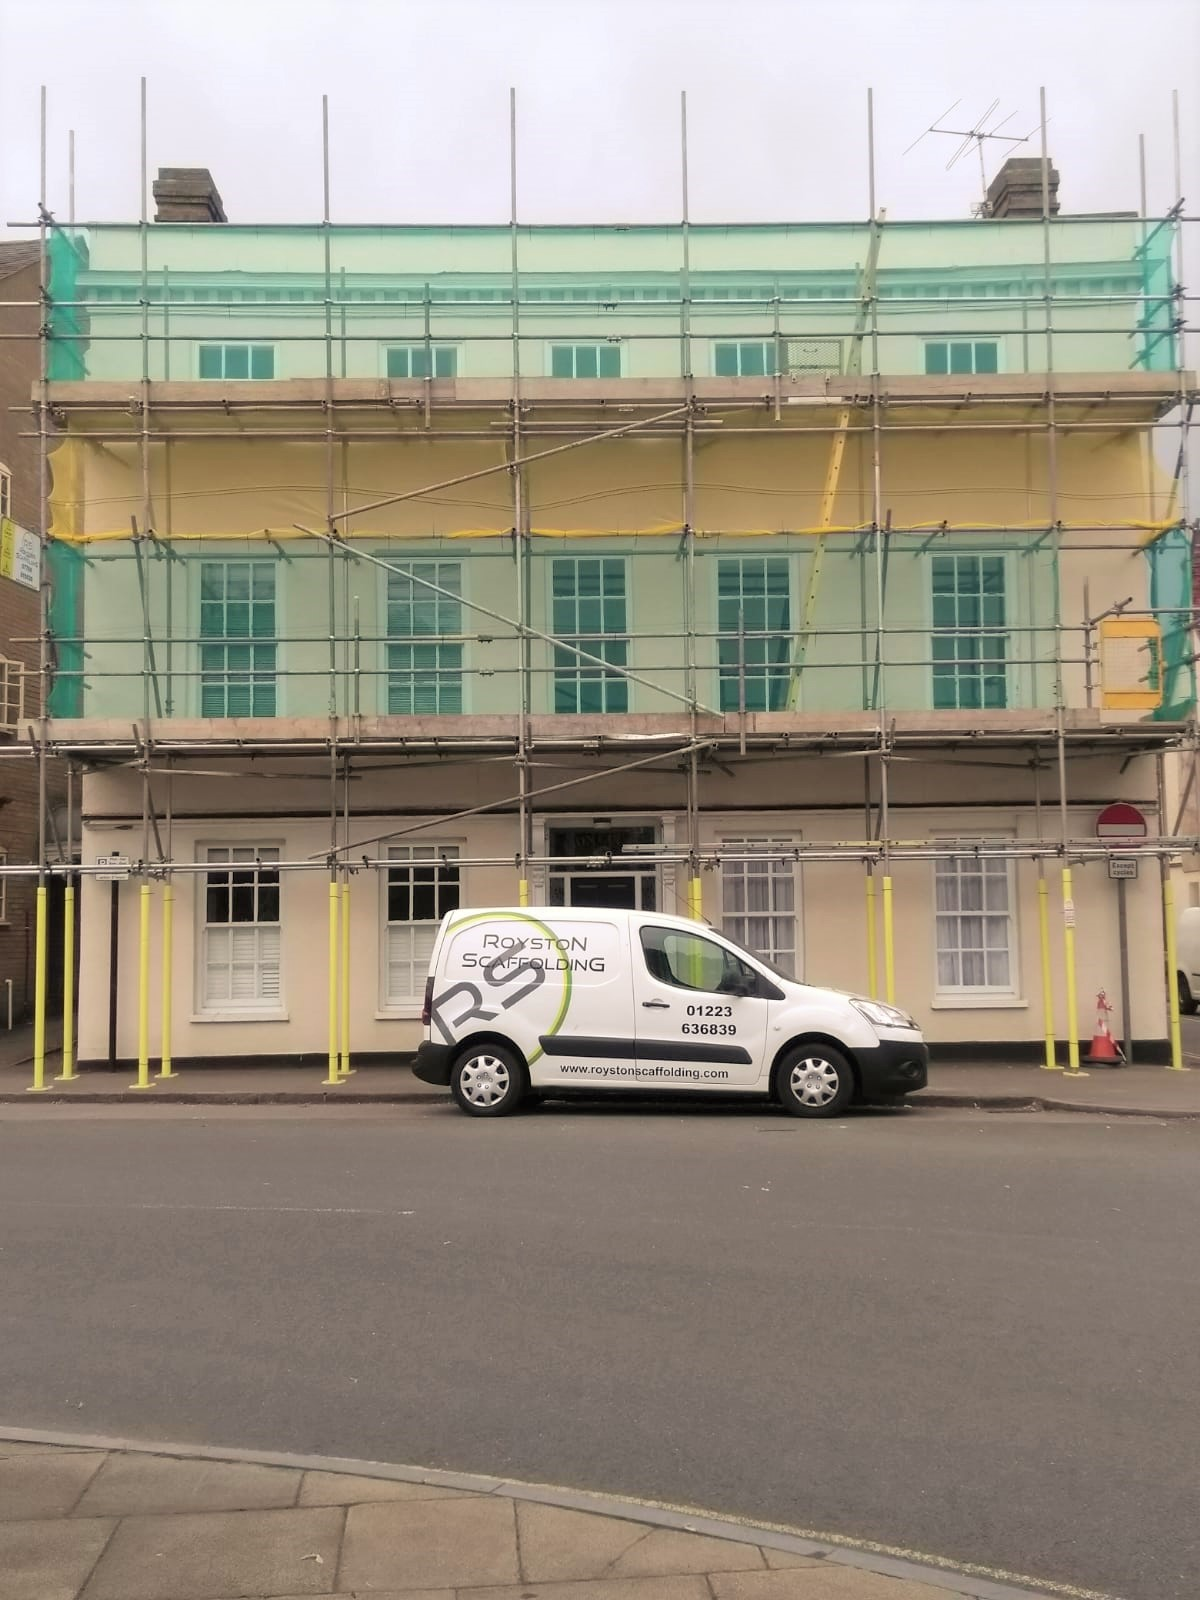 Royston-Scaffolding-projects-33.jpeg